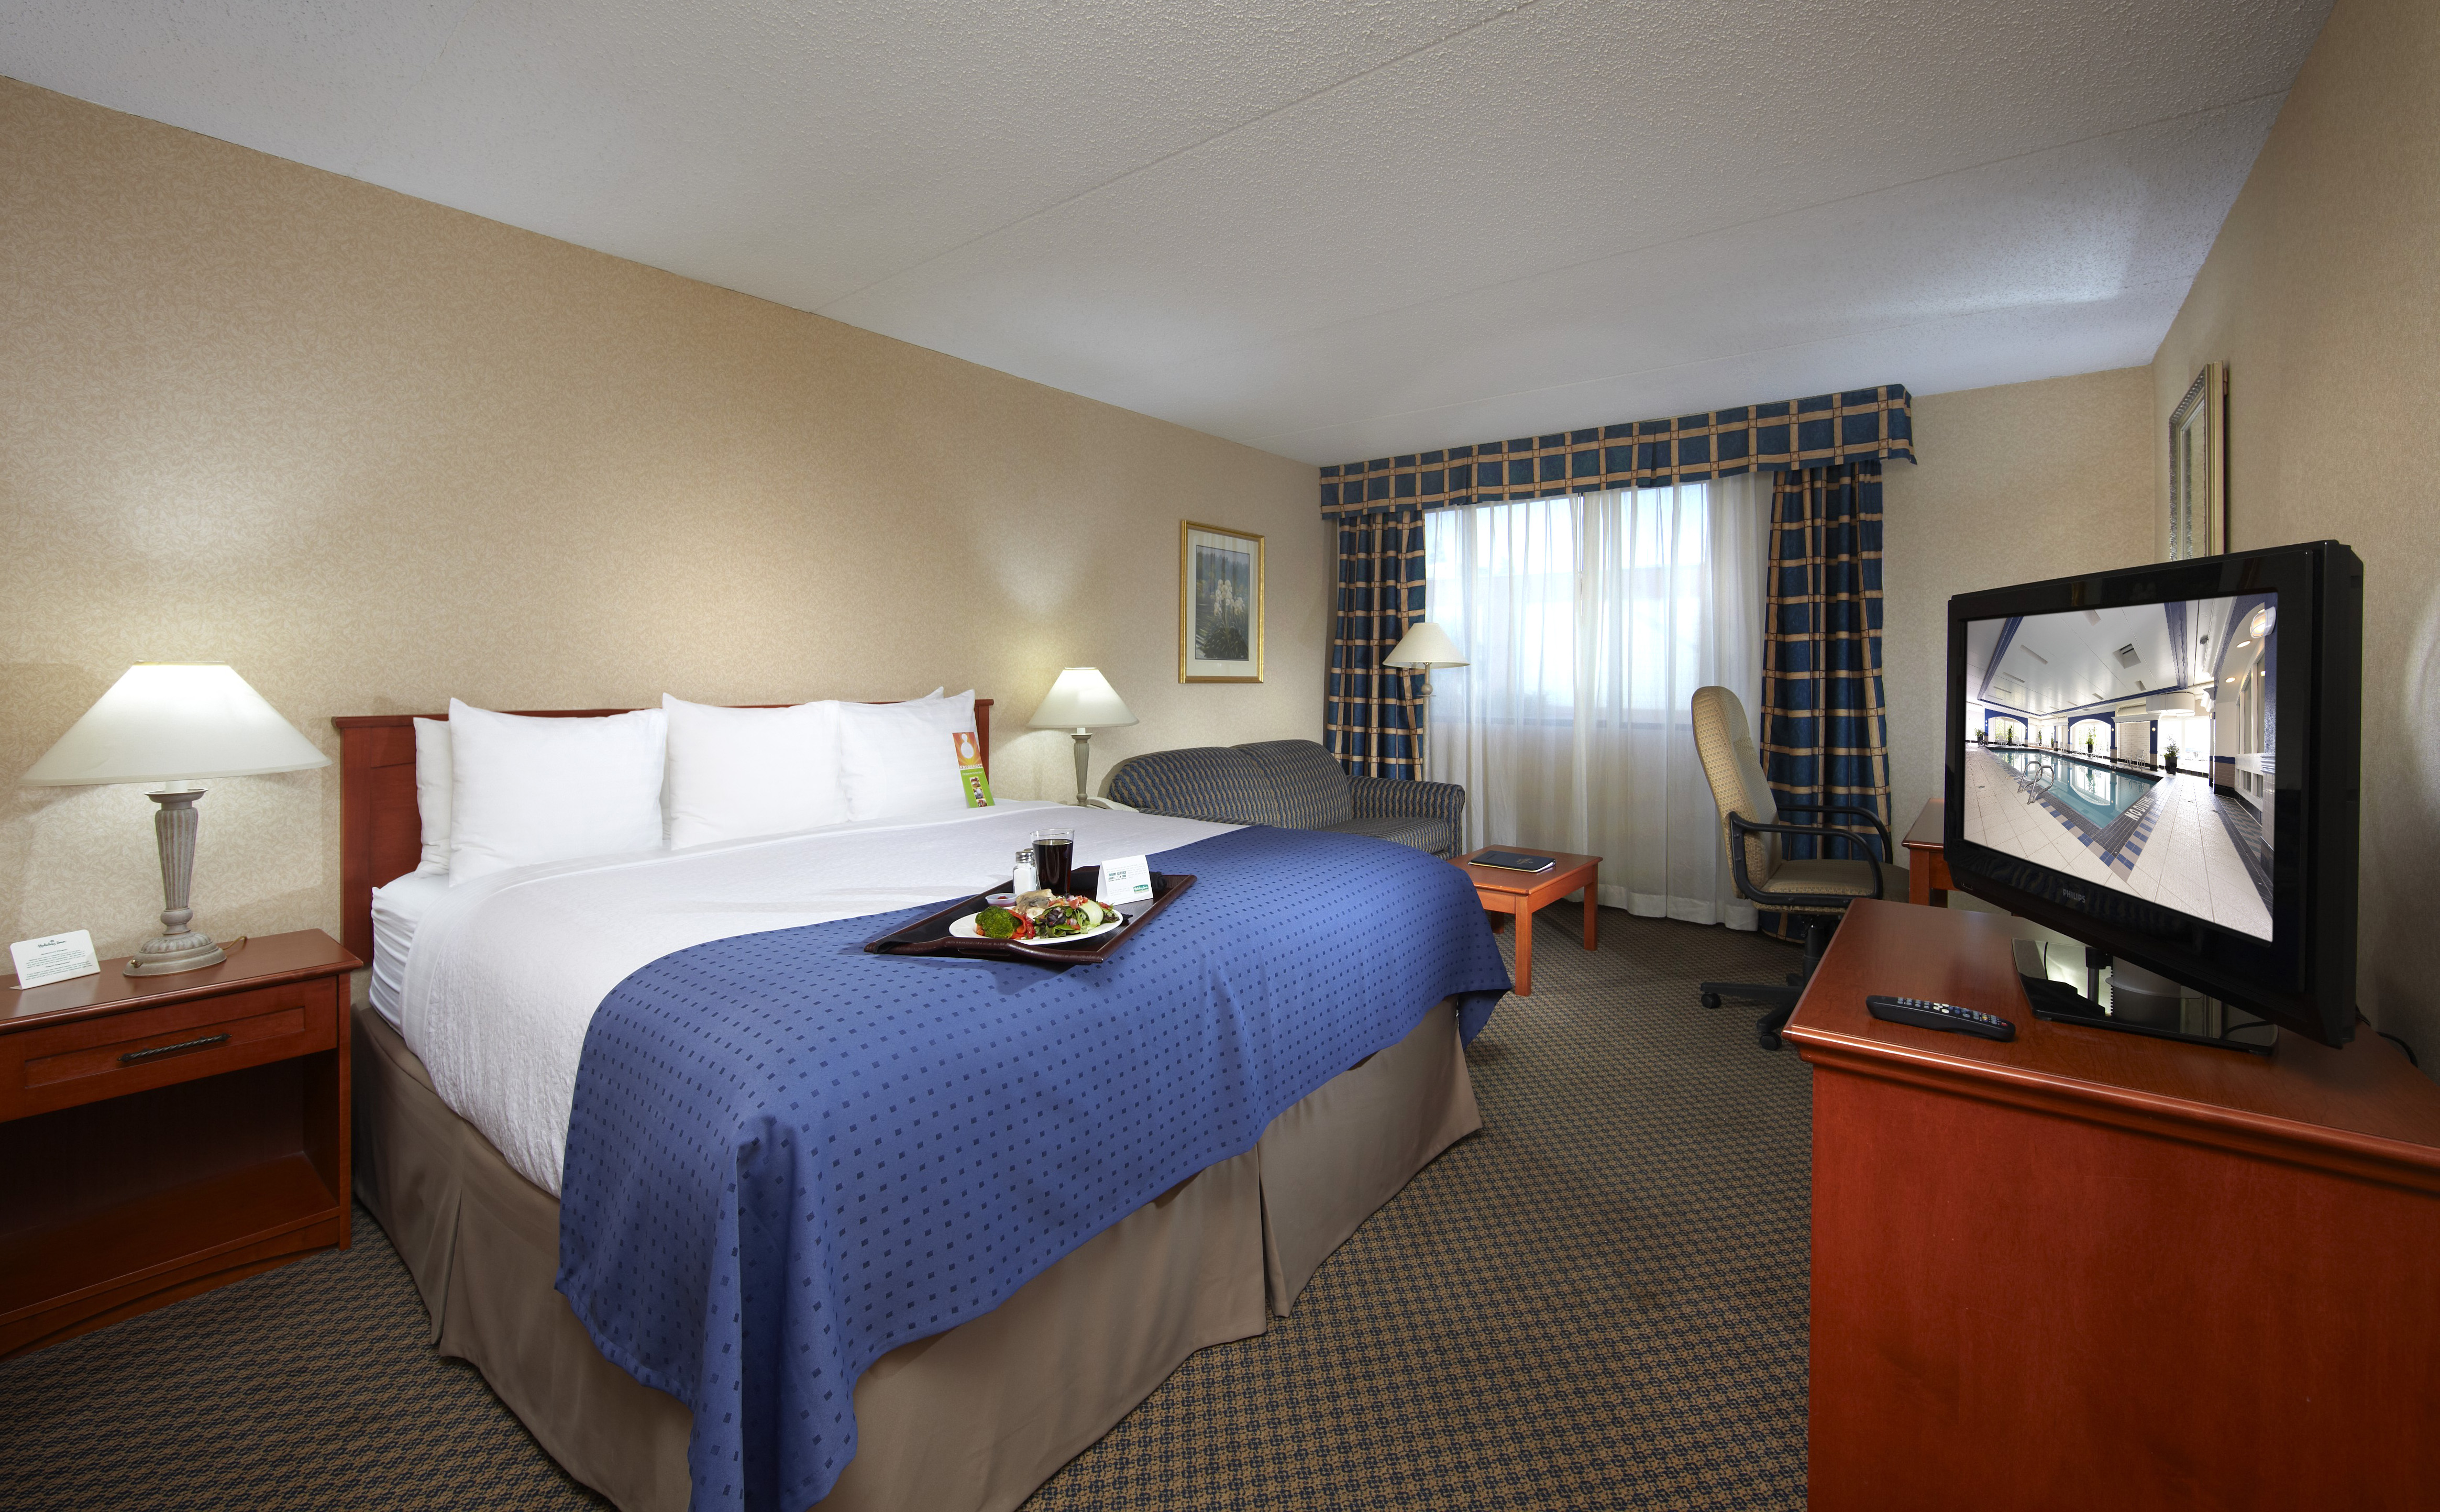 https://www.hotelsbyday.com/_data/default-hotel_image/2/10364/holiday-inn-calgary-room.jpg